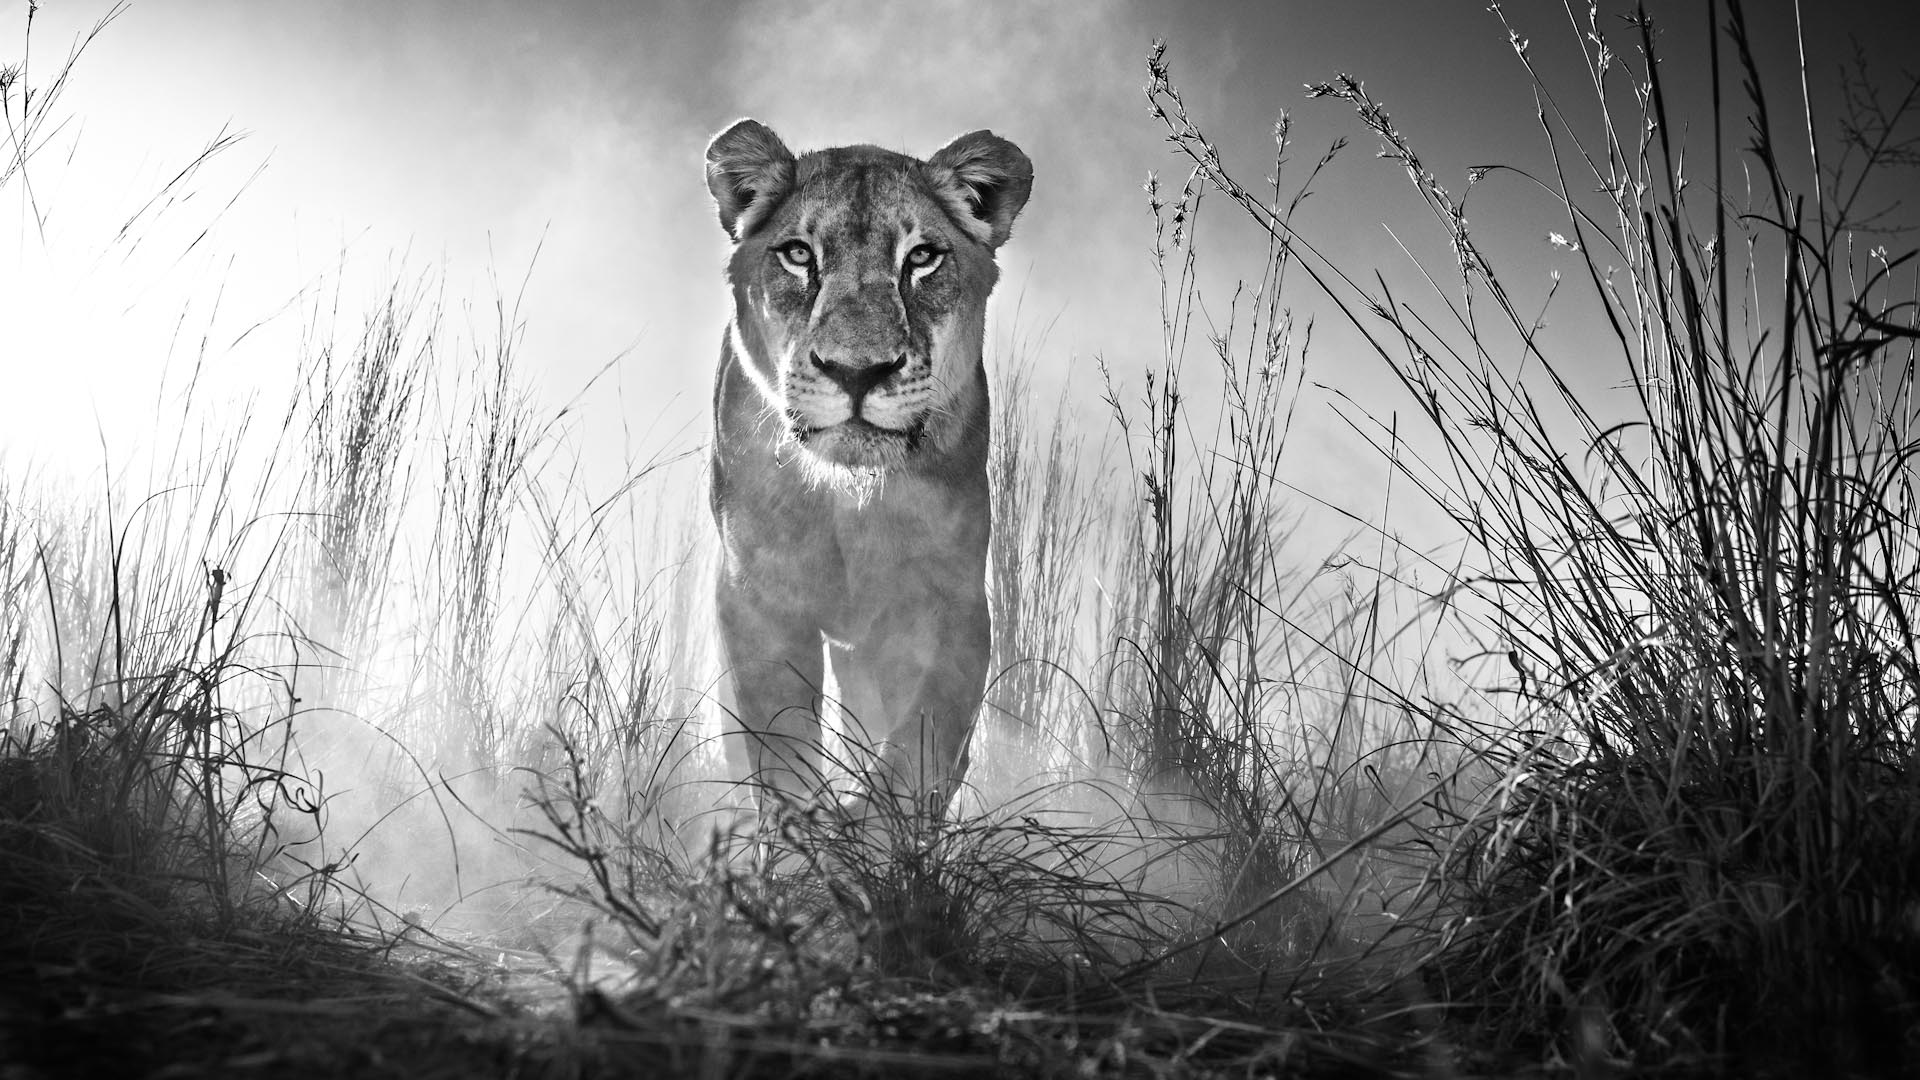 Gladiator by David Yarrow